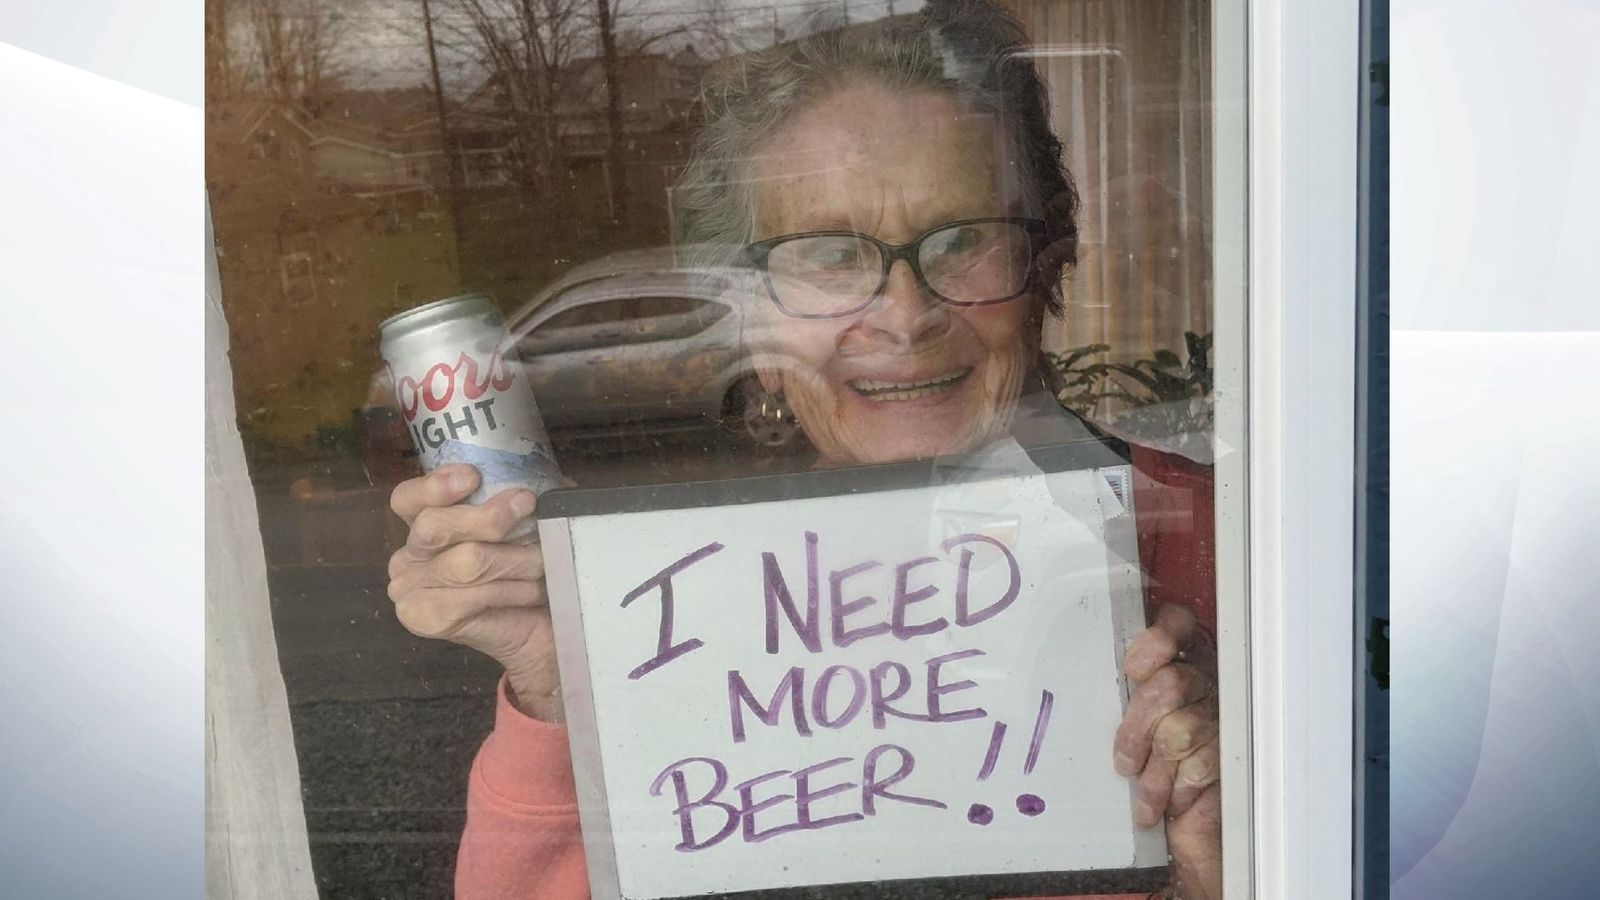 'I need more beer!!' - 93-year-old's Facebook appeal goes viral